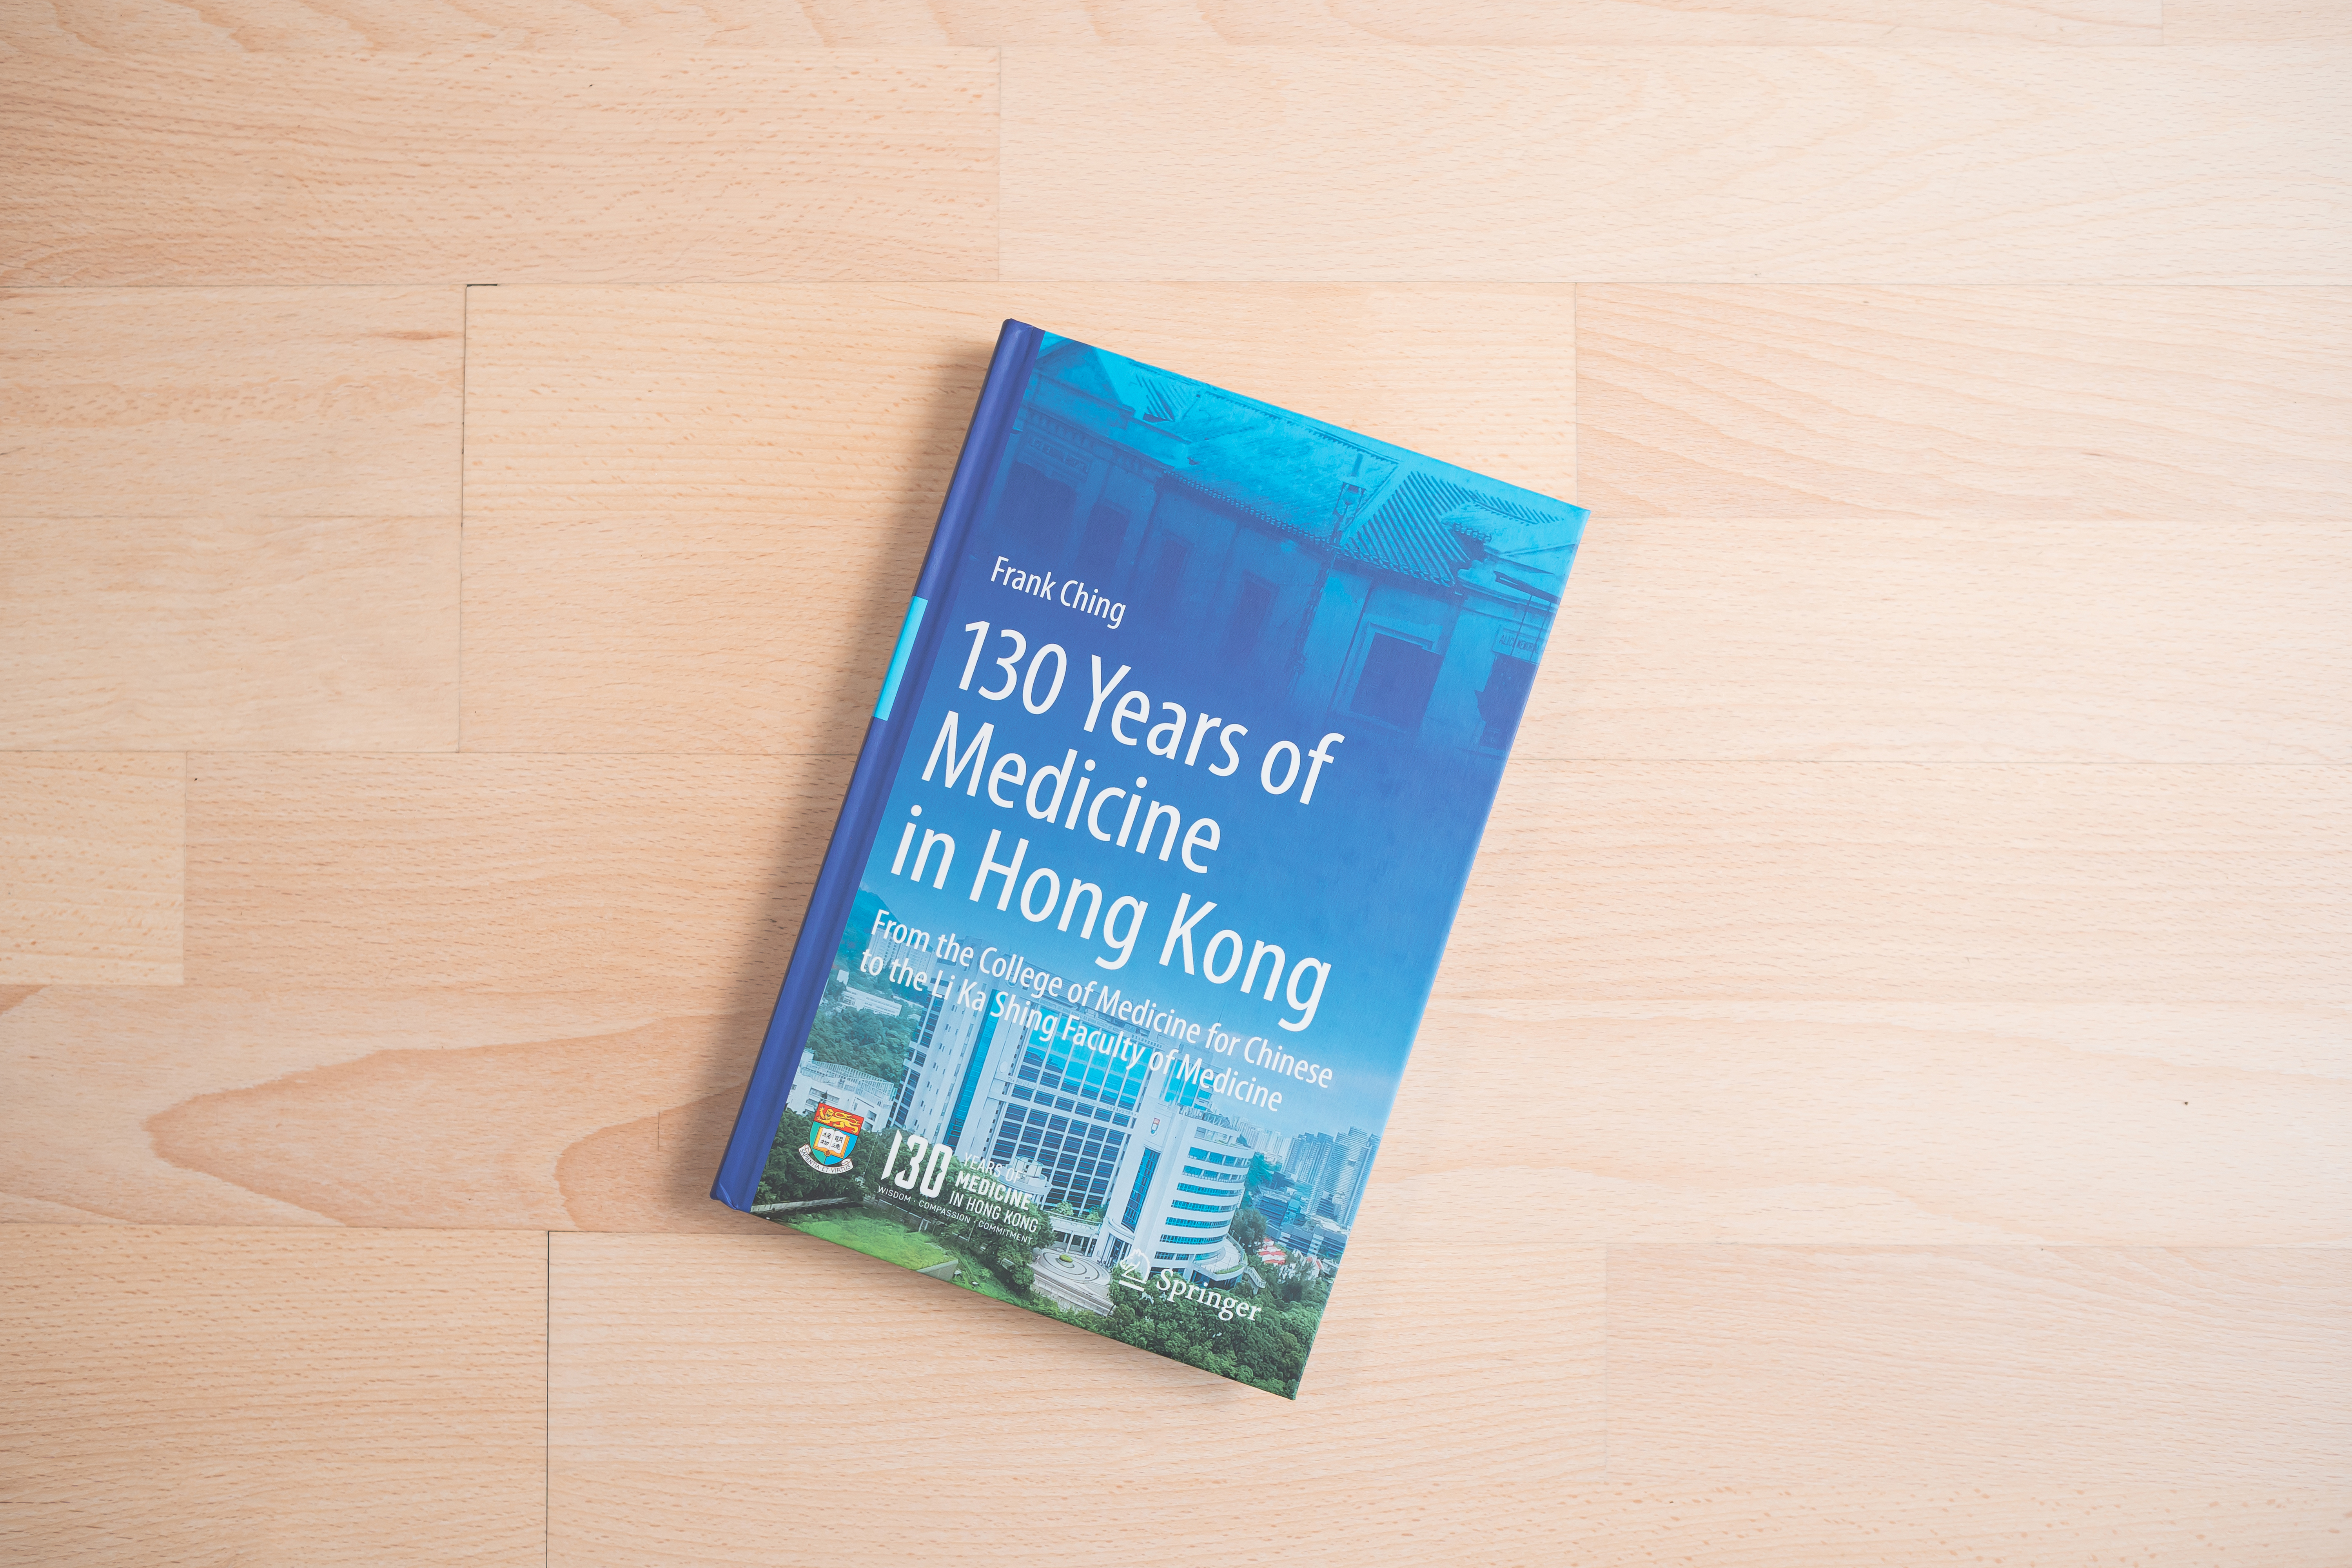 130 Years of Medicine in Hong Kong - Publications by HKUMed